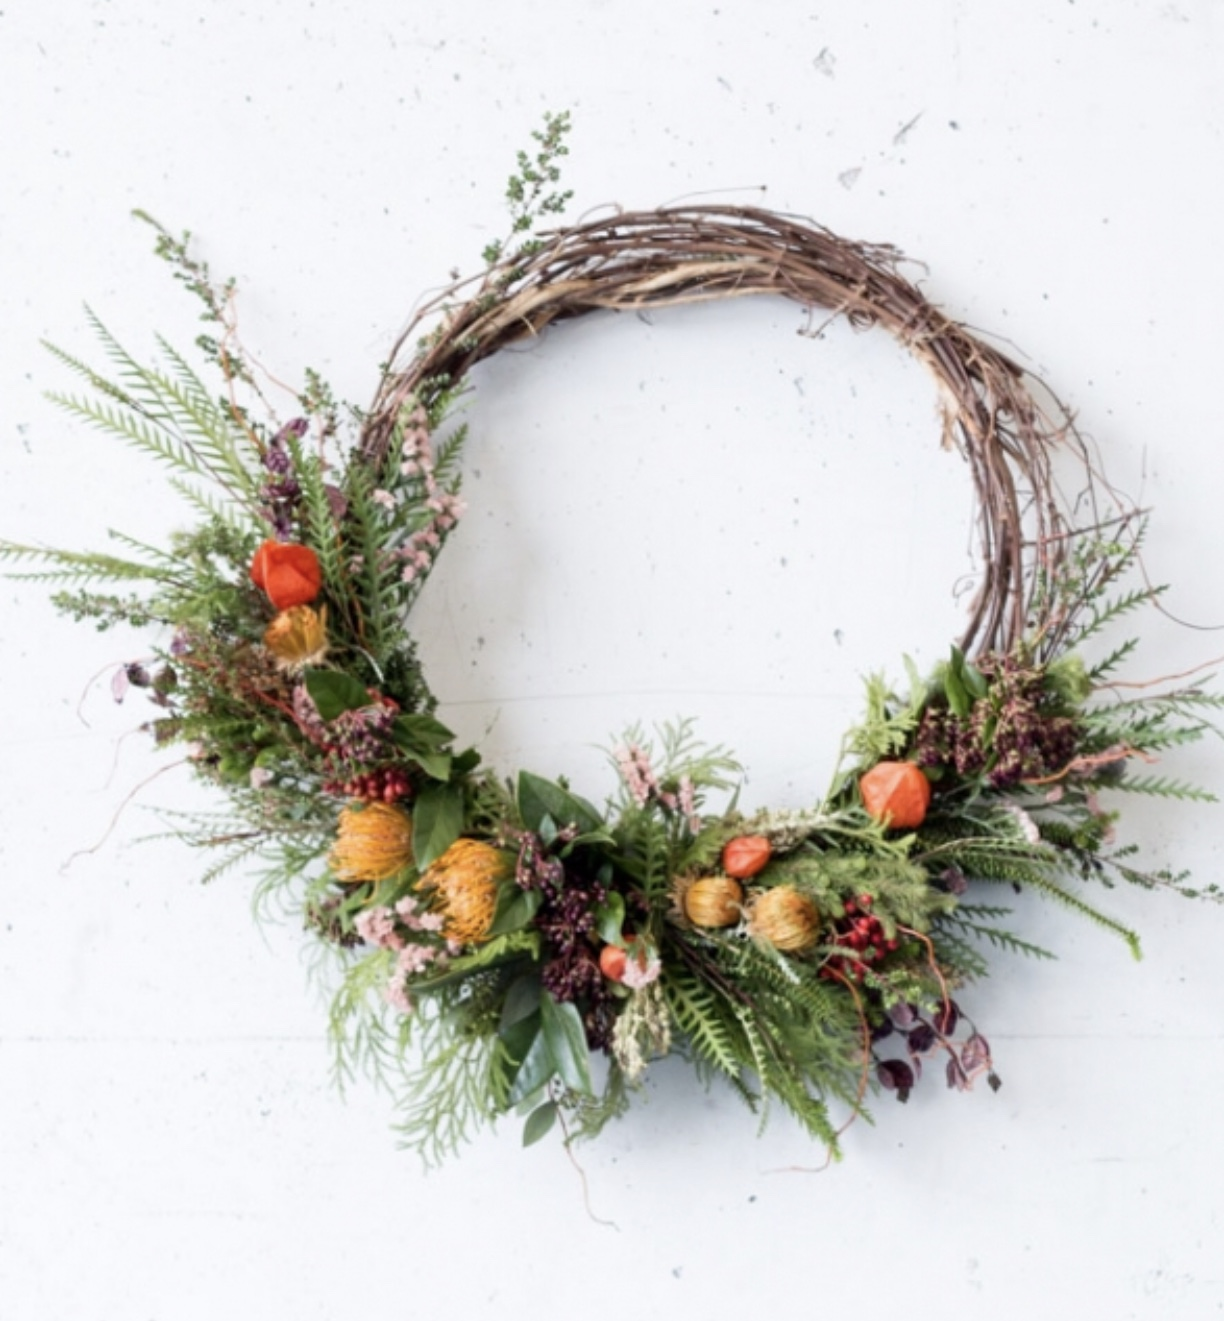 """Farmgirl Flowers - With their asymmetrical designs that incorporate """"bits and pieces"""" of seasonal goodies, I've got a bit of a crush on Farmgirl Flowers' aesthetic.$120, Harvest Wreath"""